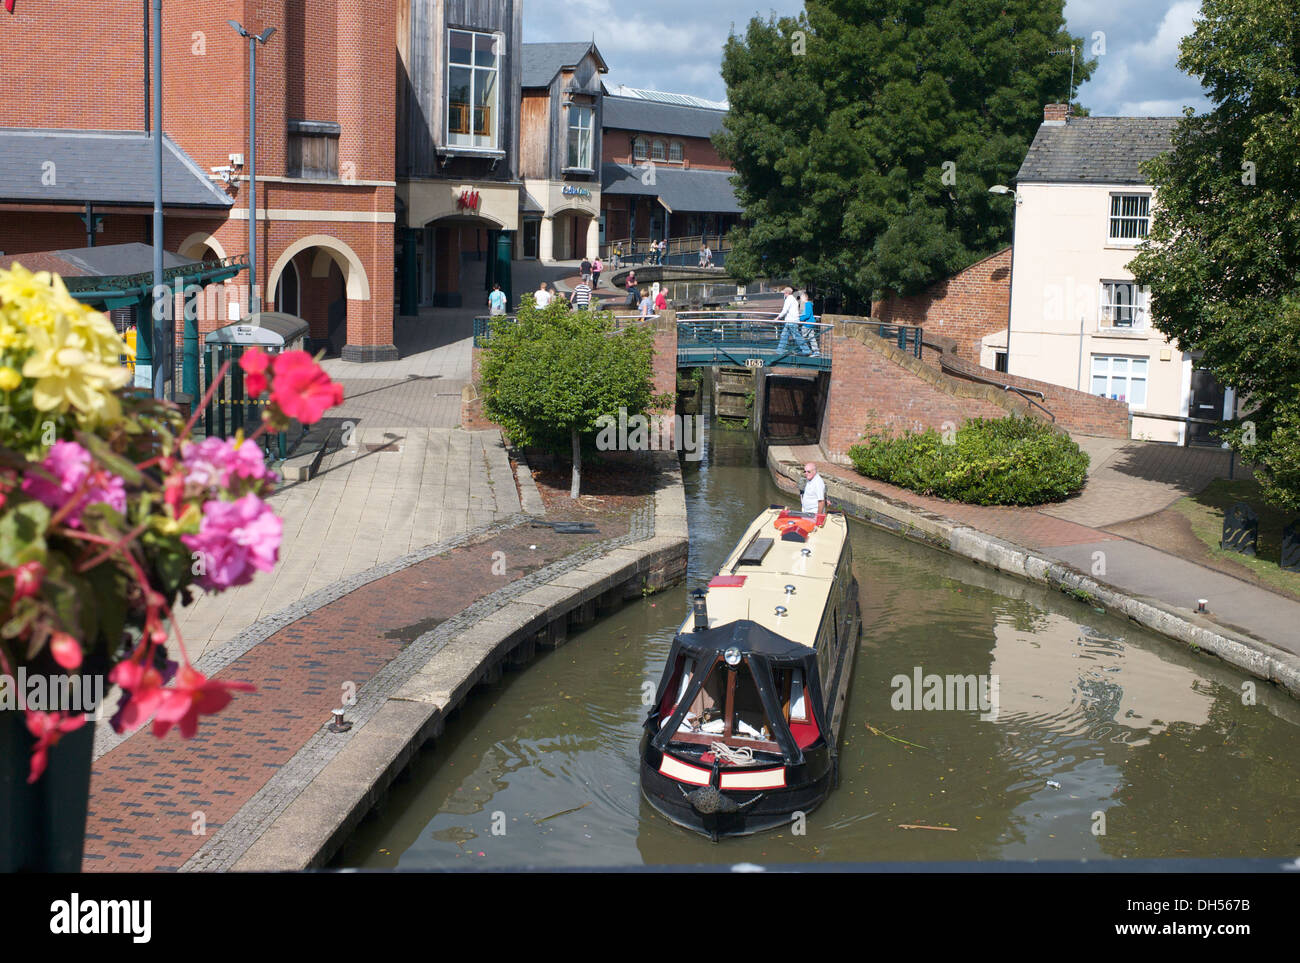 Canal boat on the Oxford Canal near Castle Quay Shopping Centre, Banbury, Oxfordshire. - Stock Image